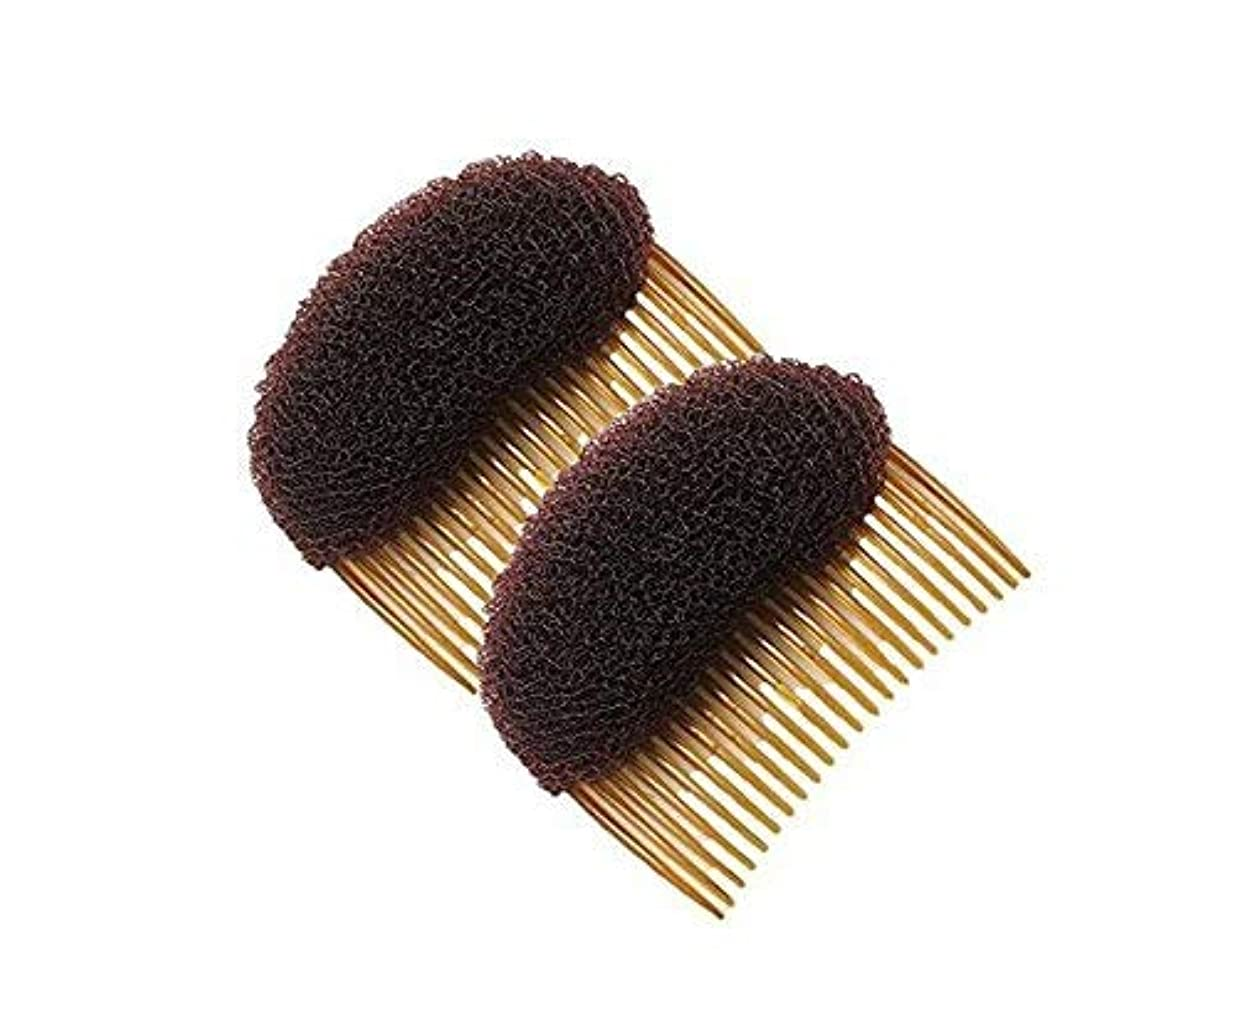 デイジー安いです囲まれた2PCS 23 Teeth Hair Fringe Volume Bump Up Inserts Tools-Hair Pin Hair Styling Clip Hair Charming Insert Do Beehive...